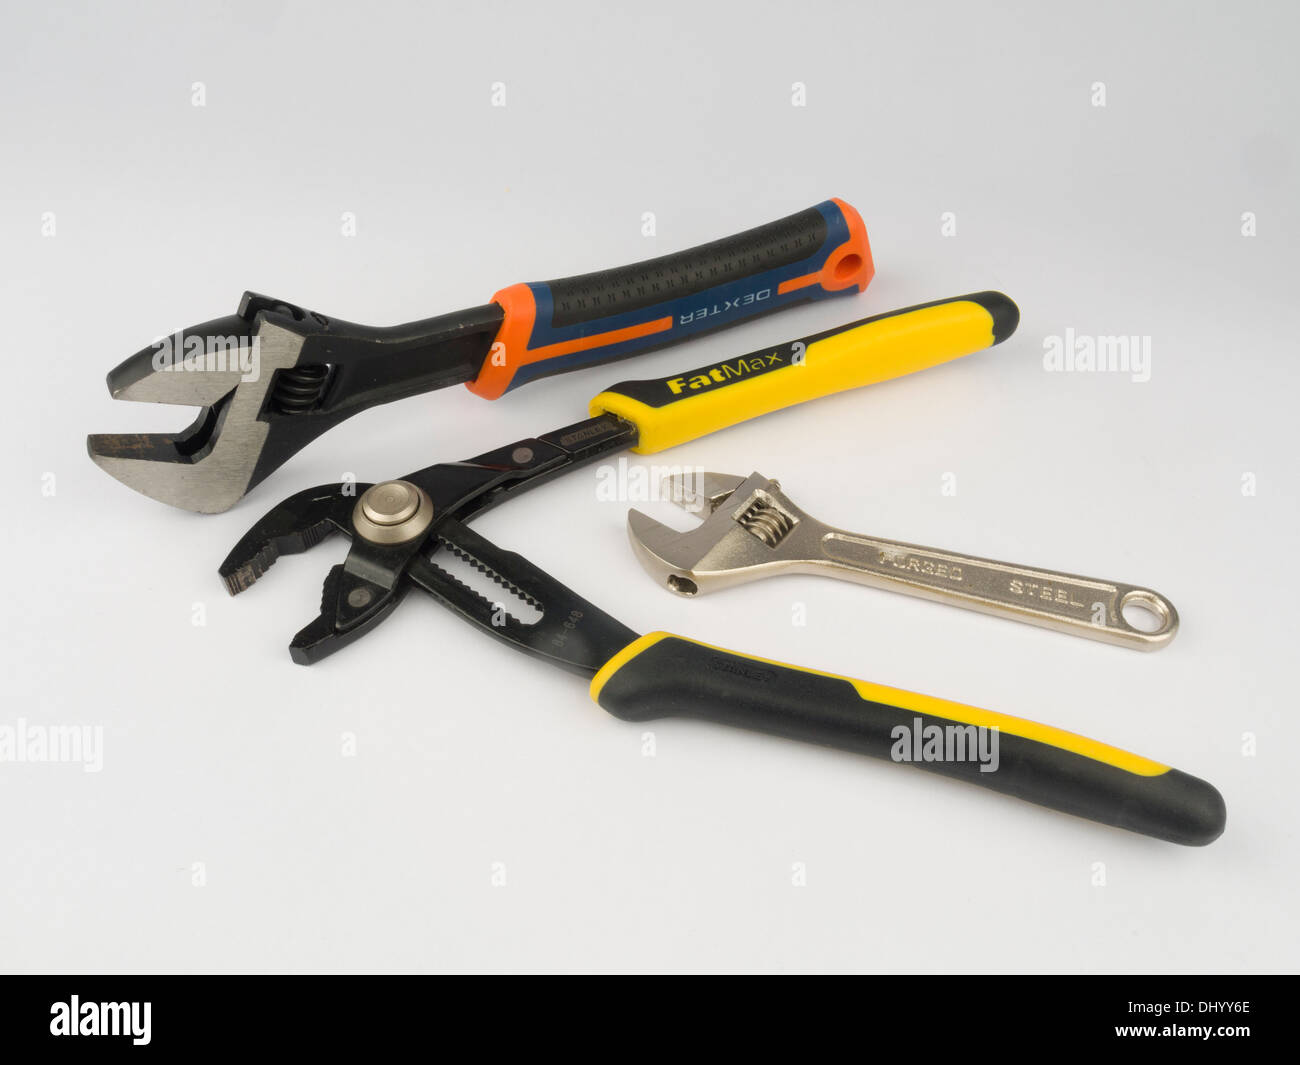 Adjustable wrenches (spanners) and pipe wrench pliers isolated on white background - Stock Image